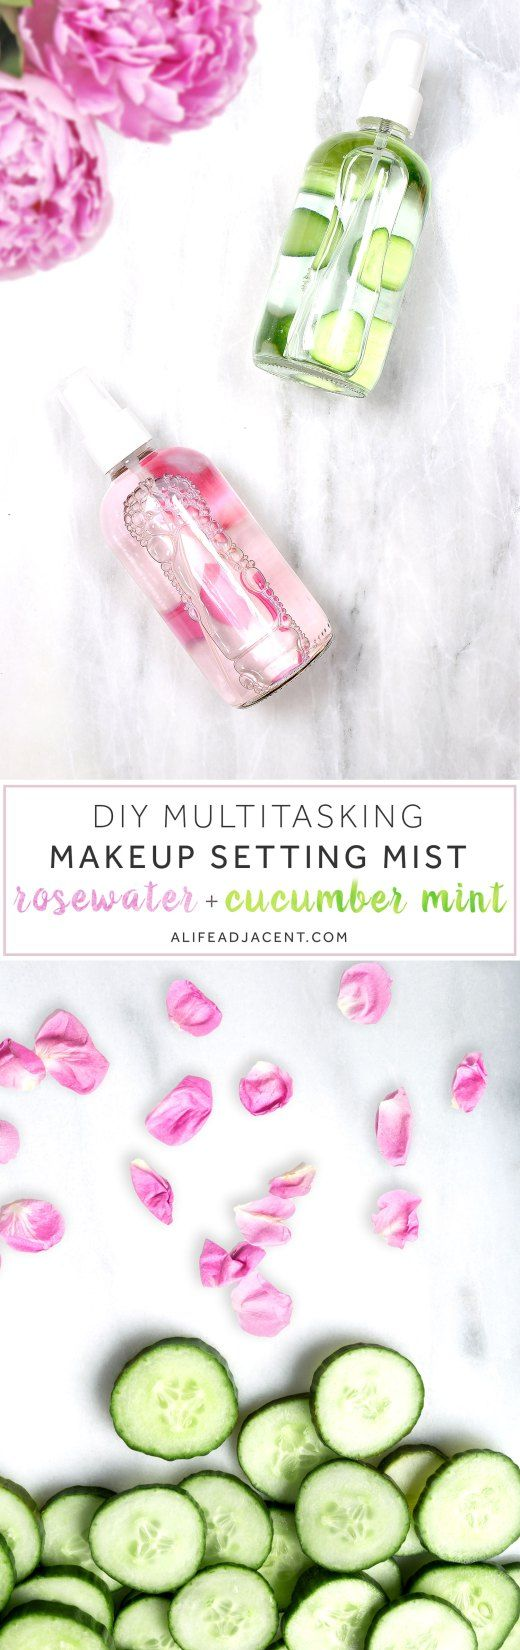 Rosewater, roses, cucumber, mint, vegetable, glycerin, makeup, face mist, setting spray, toner, essence, petals, cucumber slices, marble, natural, DIY, beauty, homemade, holistic, health, nontoxic, personal care, pink, green, dewy, glow, highlight, matte, skin, skin care, glass bottle, simple, easy, cheap, moisturize, hydrate, hydration, preservative, rose otto, cucumber extract, essential oil. Bottom photo © EJ Grubbs / Bigstock Photo / 279photo / Bigstock Photo